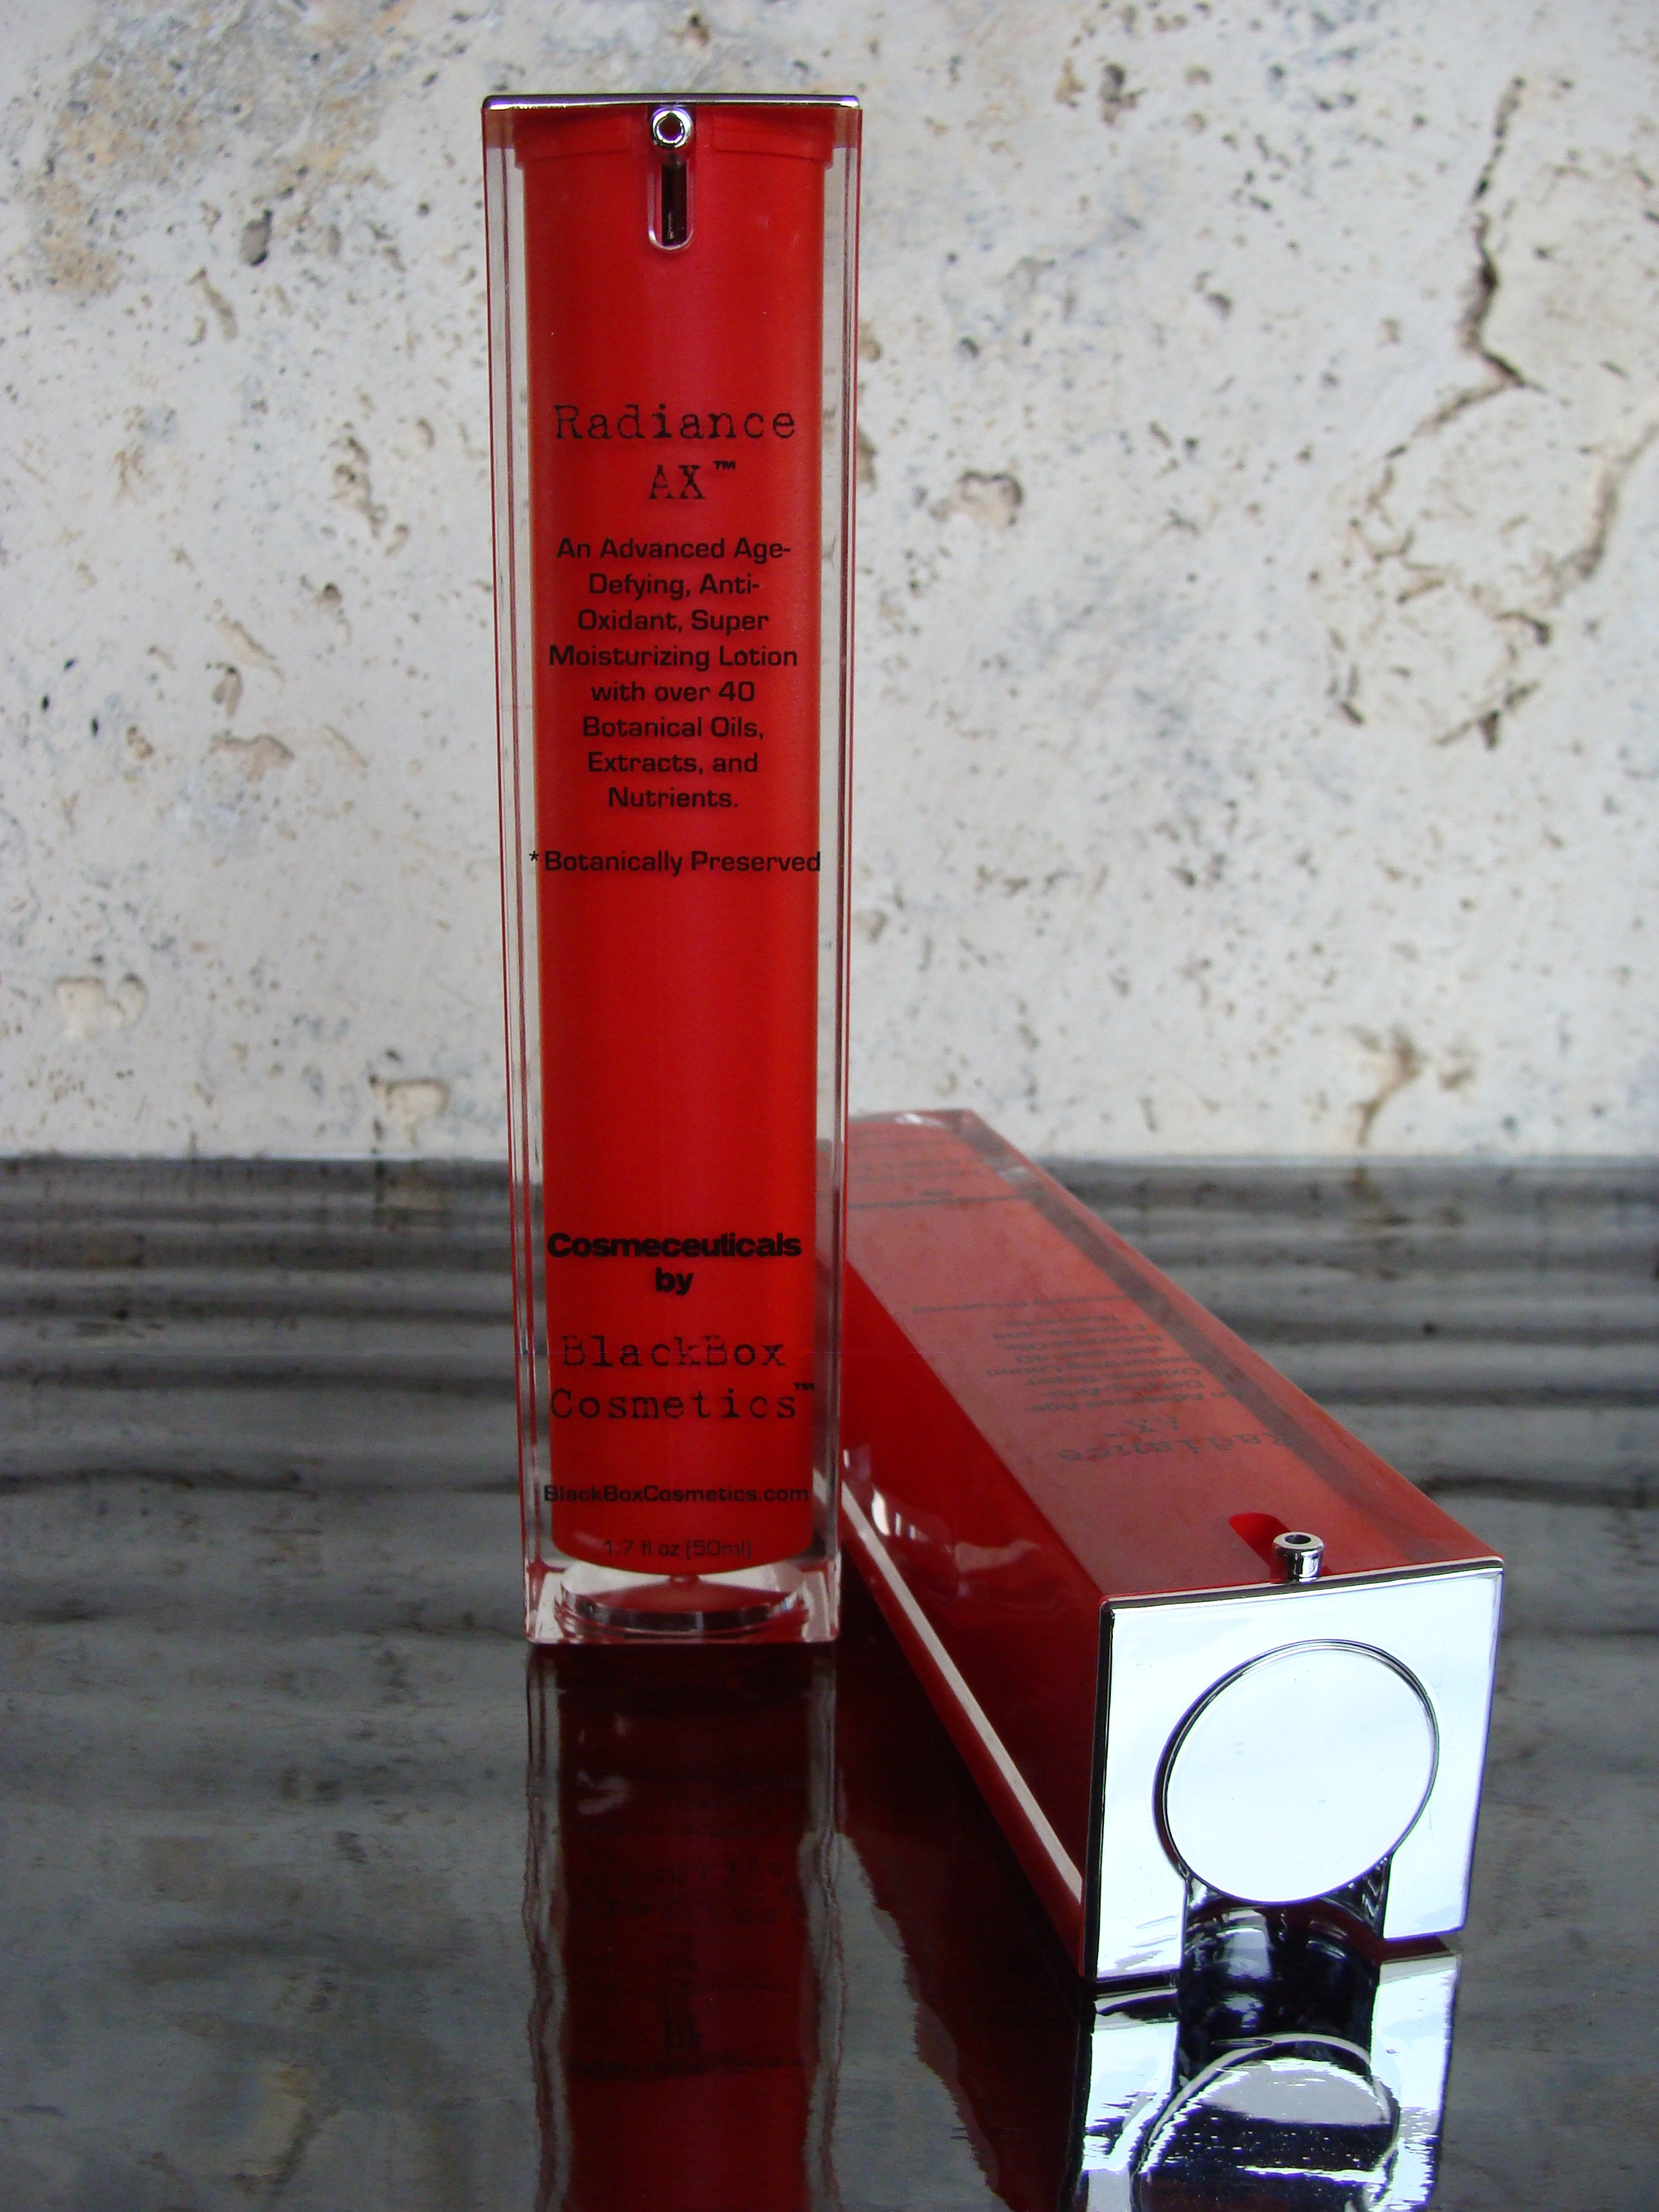 BlackBox Cosmetics Radiance AX